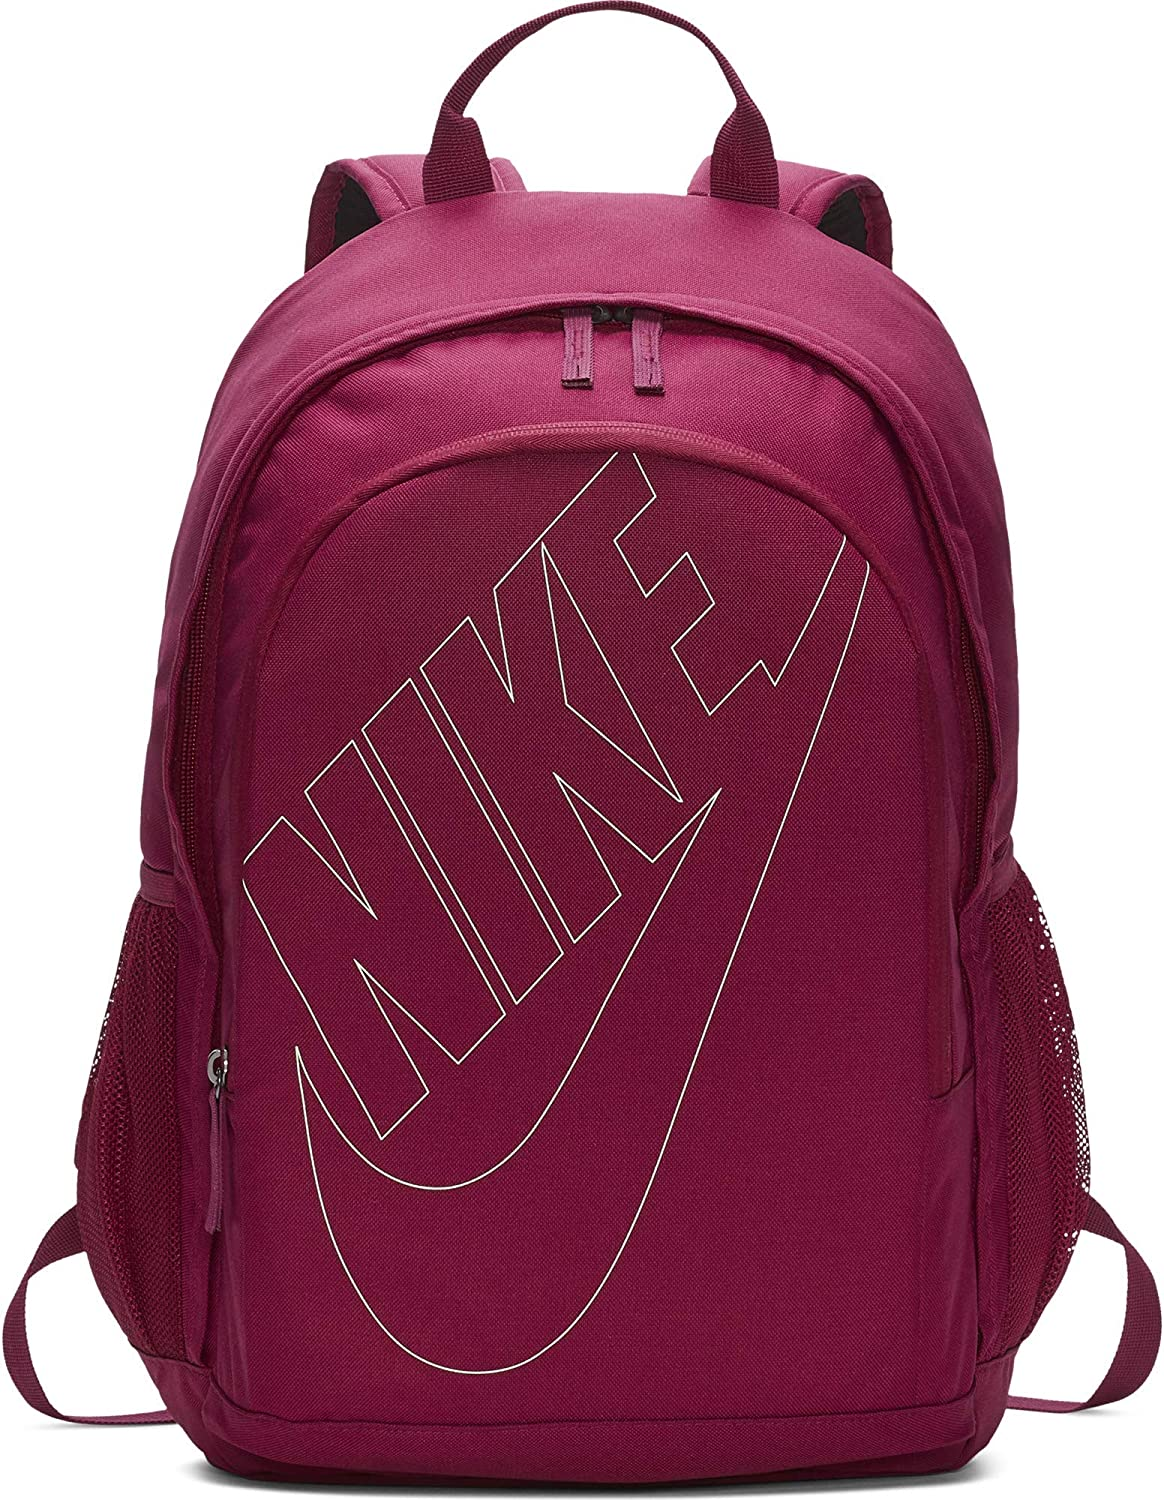 Nike Sportswear Hayward Futura Backpack for Men, Large Backpack with Durable Polyester Shell and Padded Shoulder Straps, True Berry True Berry Frosted